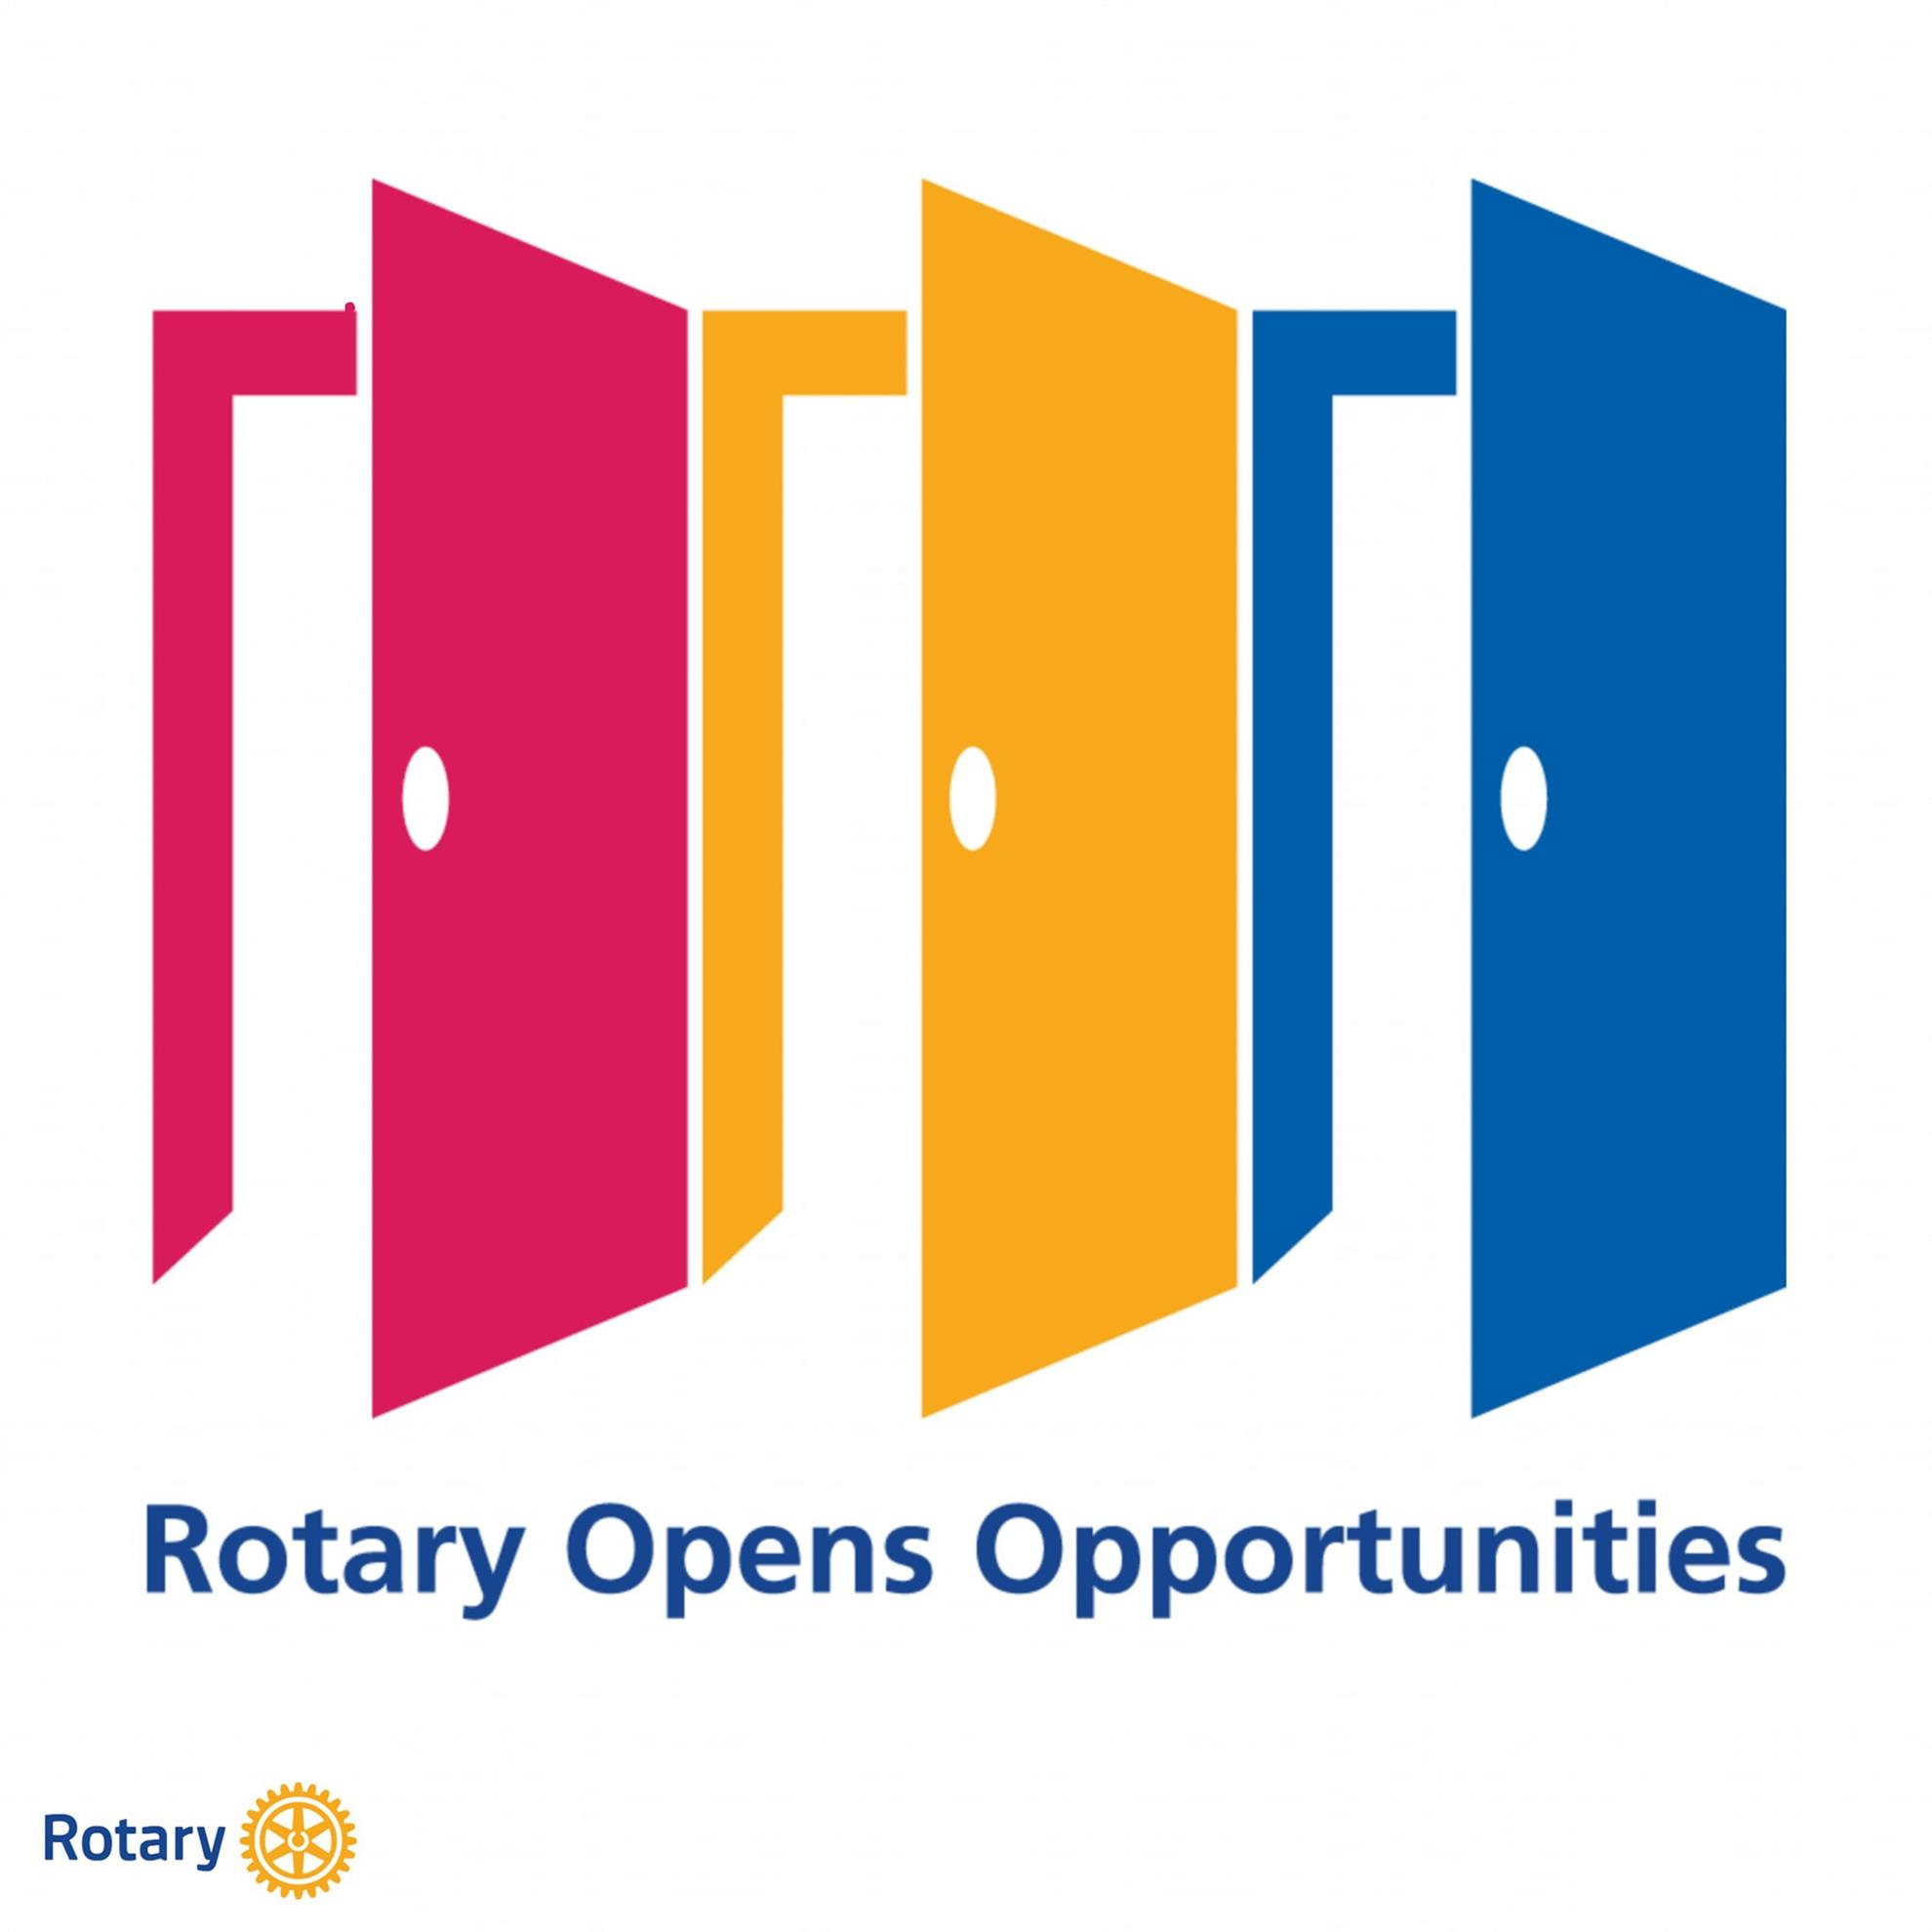 Rotary Presidential Logo and Theme 2020-2021   Rotary Club of ...